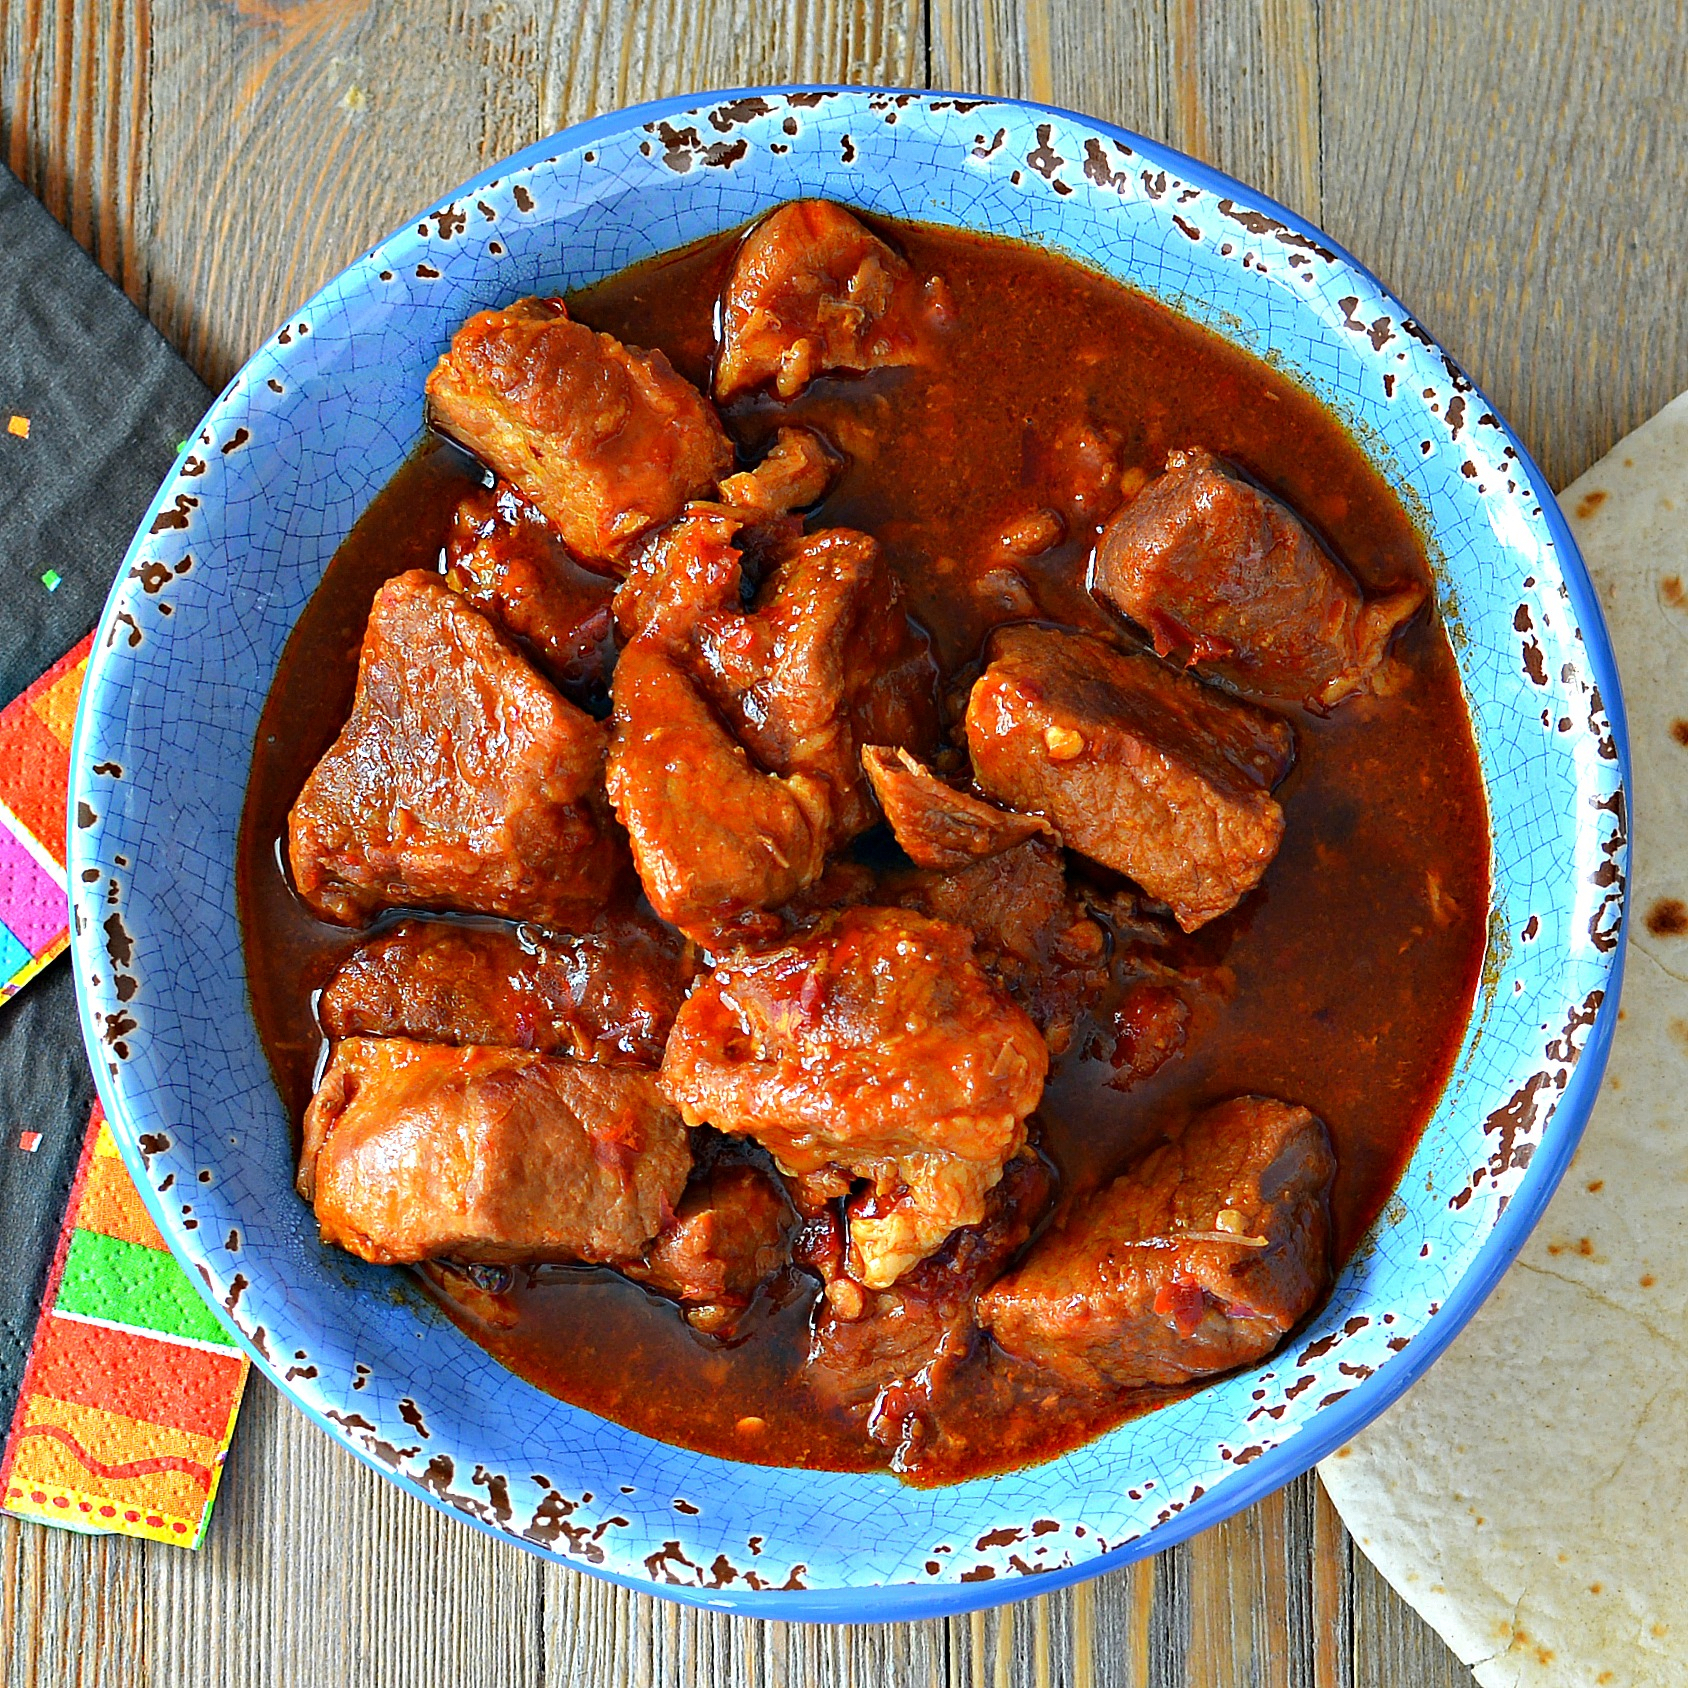 A blue bowl filled with chunks of beef in a red chile sauce